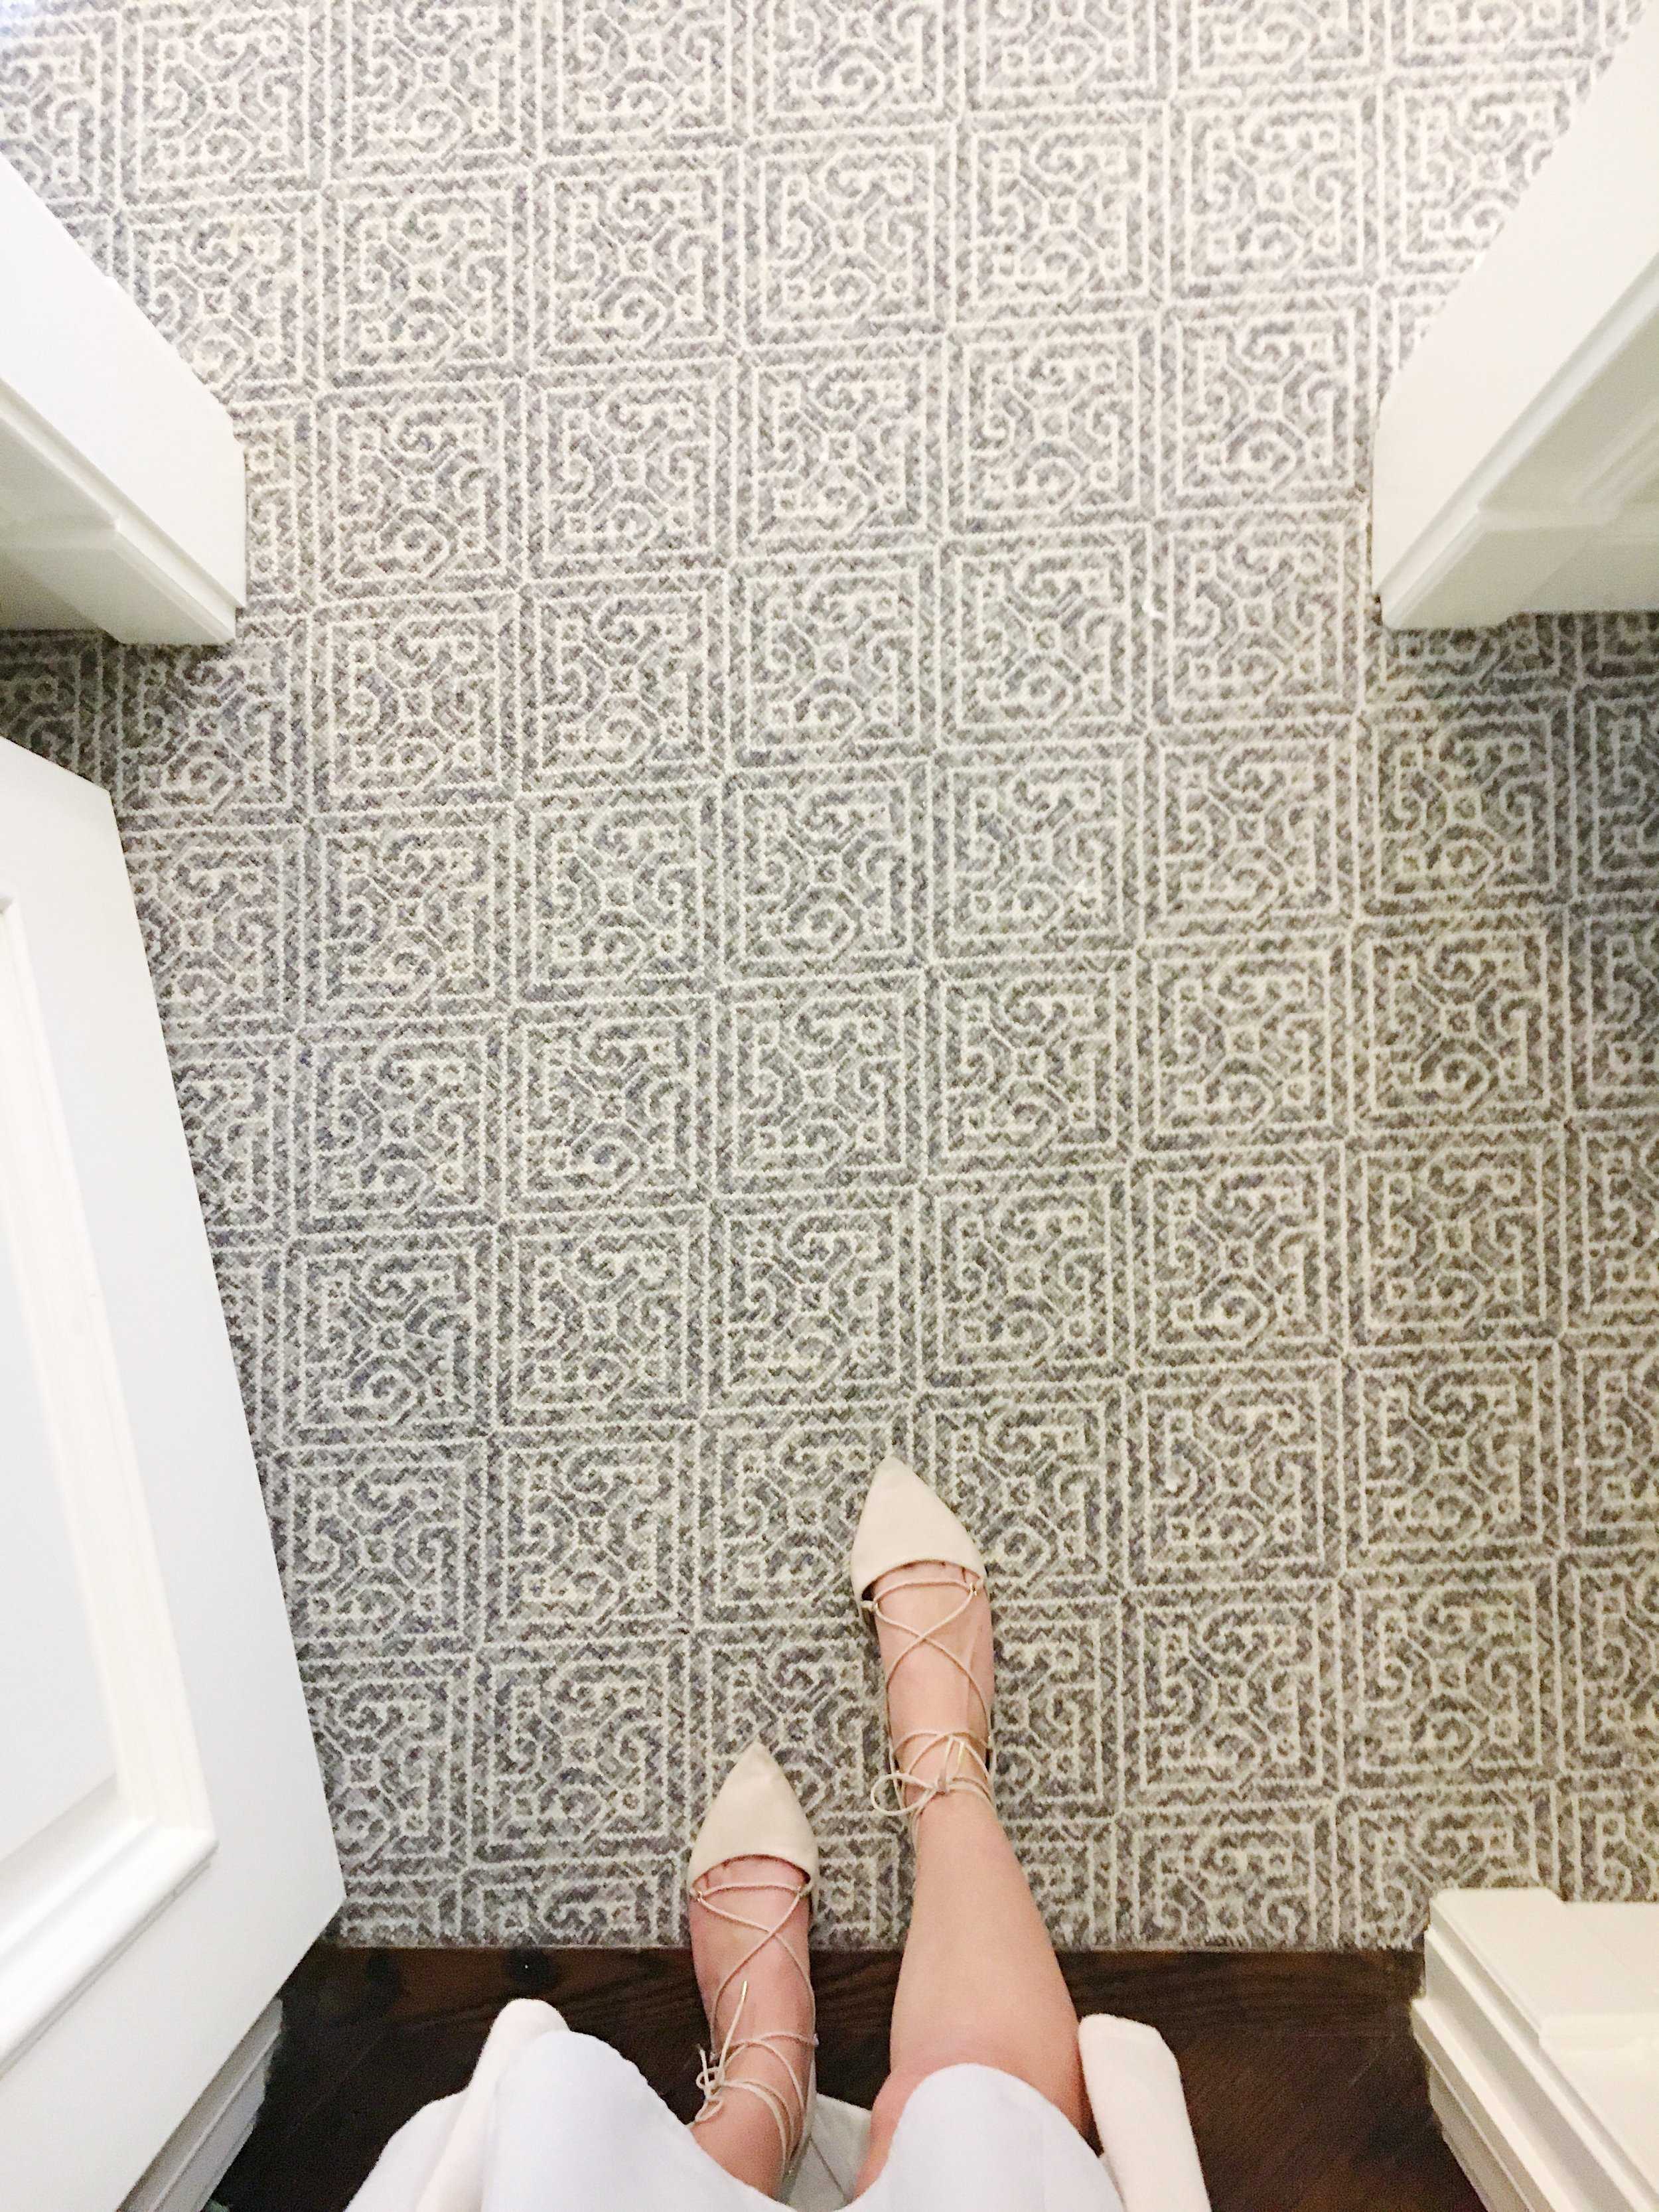 The beginning of our Master Suite renovation - We LOVE our STARK carpet!